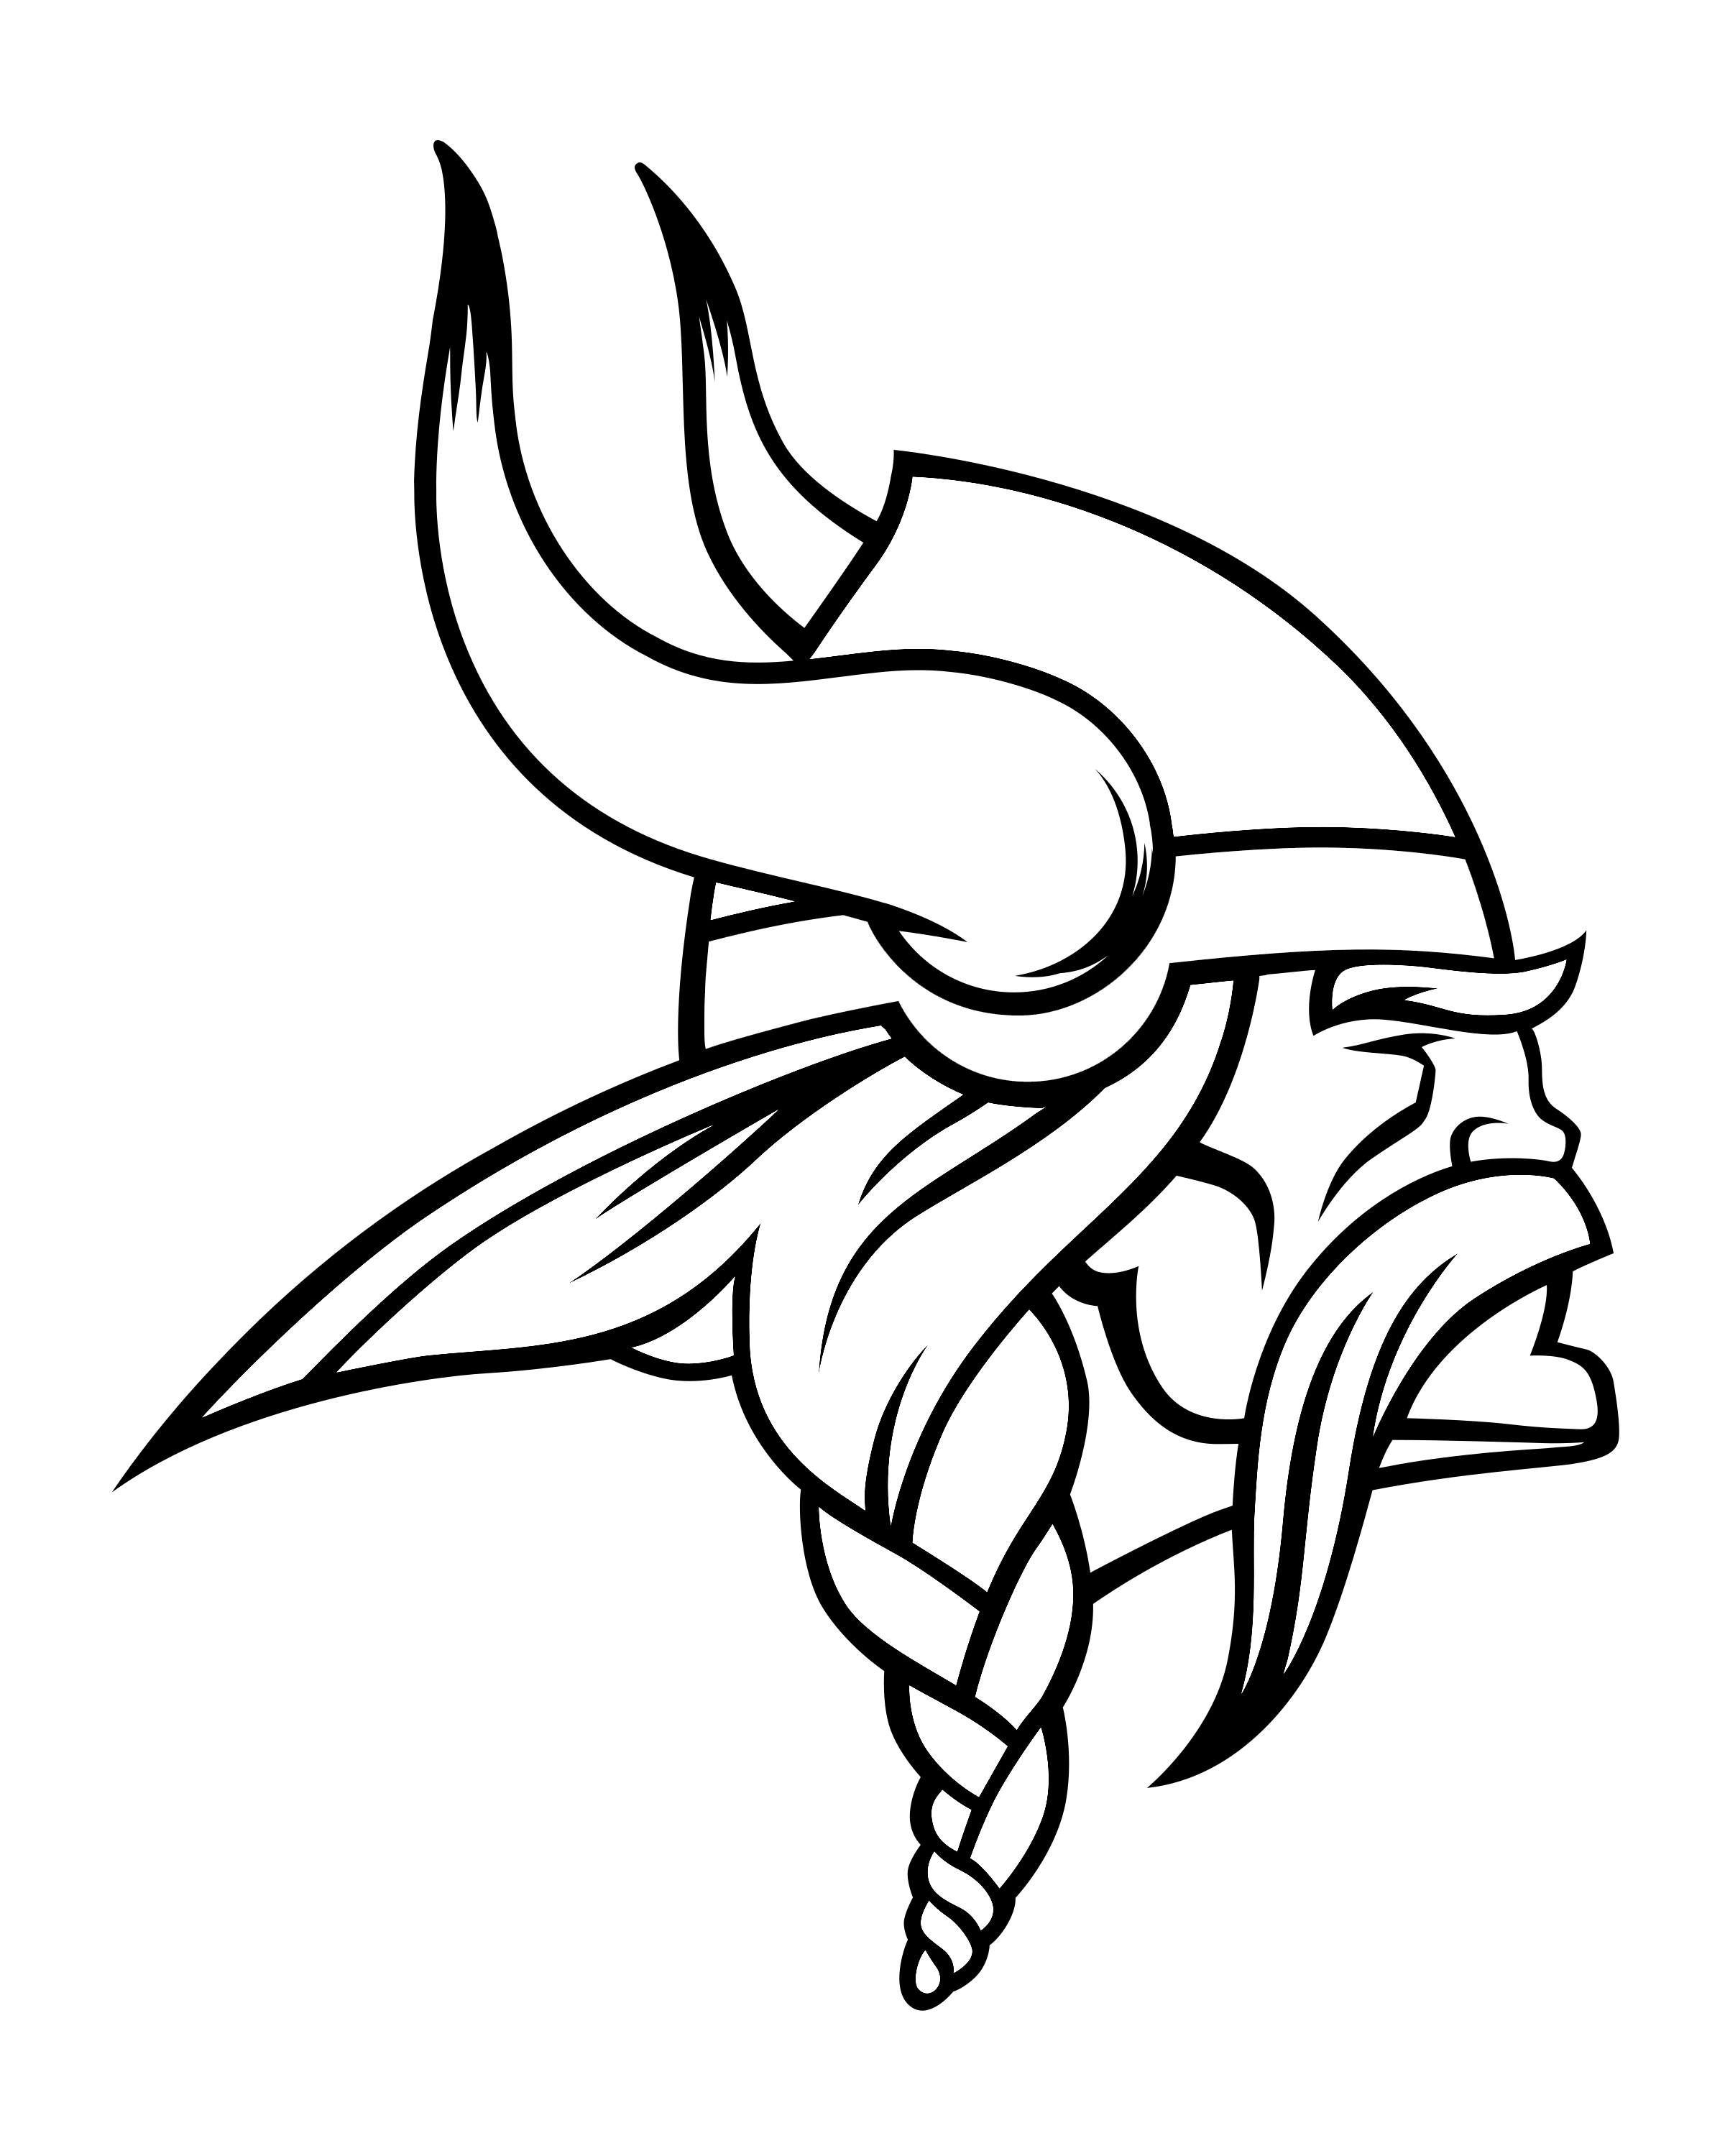 Minnesota Vikings Png - Viking Png Black And White & Free Viking Black And White.png ...